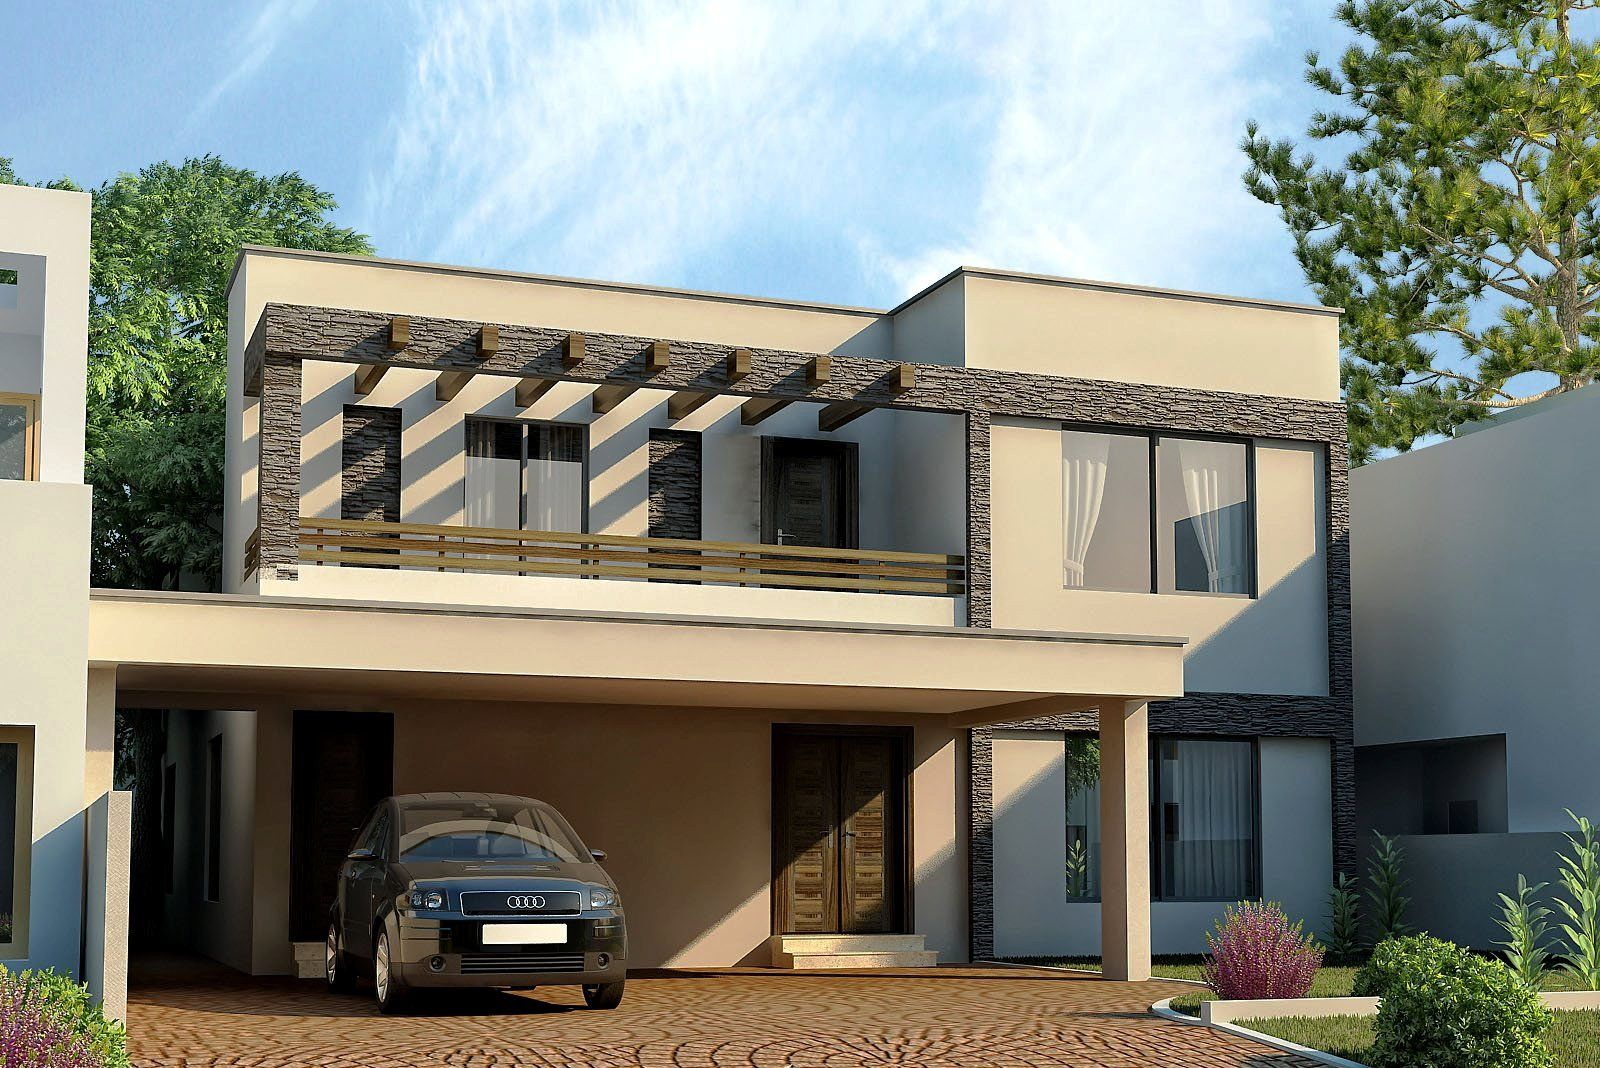 Futuristic House Front Design Before And After On Architectures Design Ideas House Front Design Duplex House Design Modern Contemporary House Plans